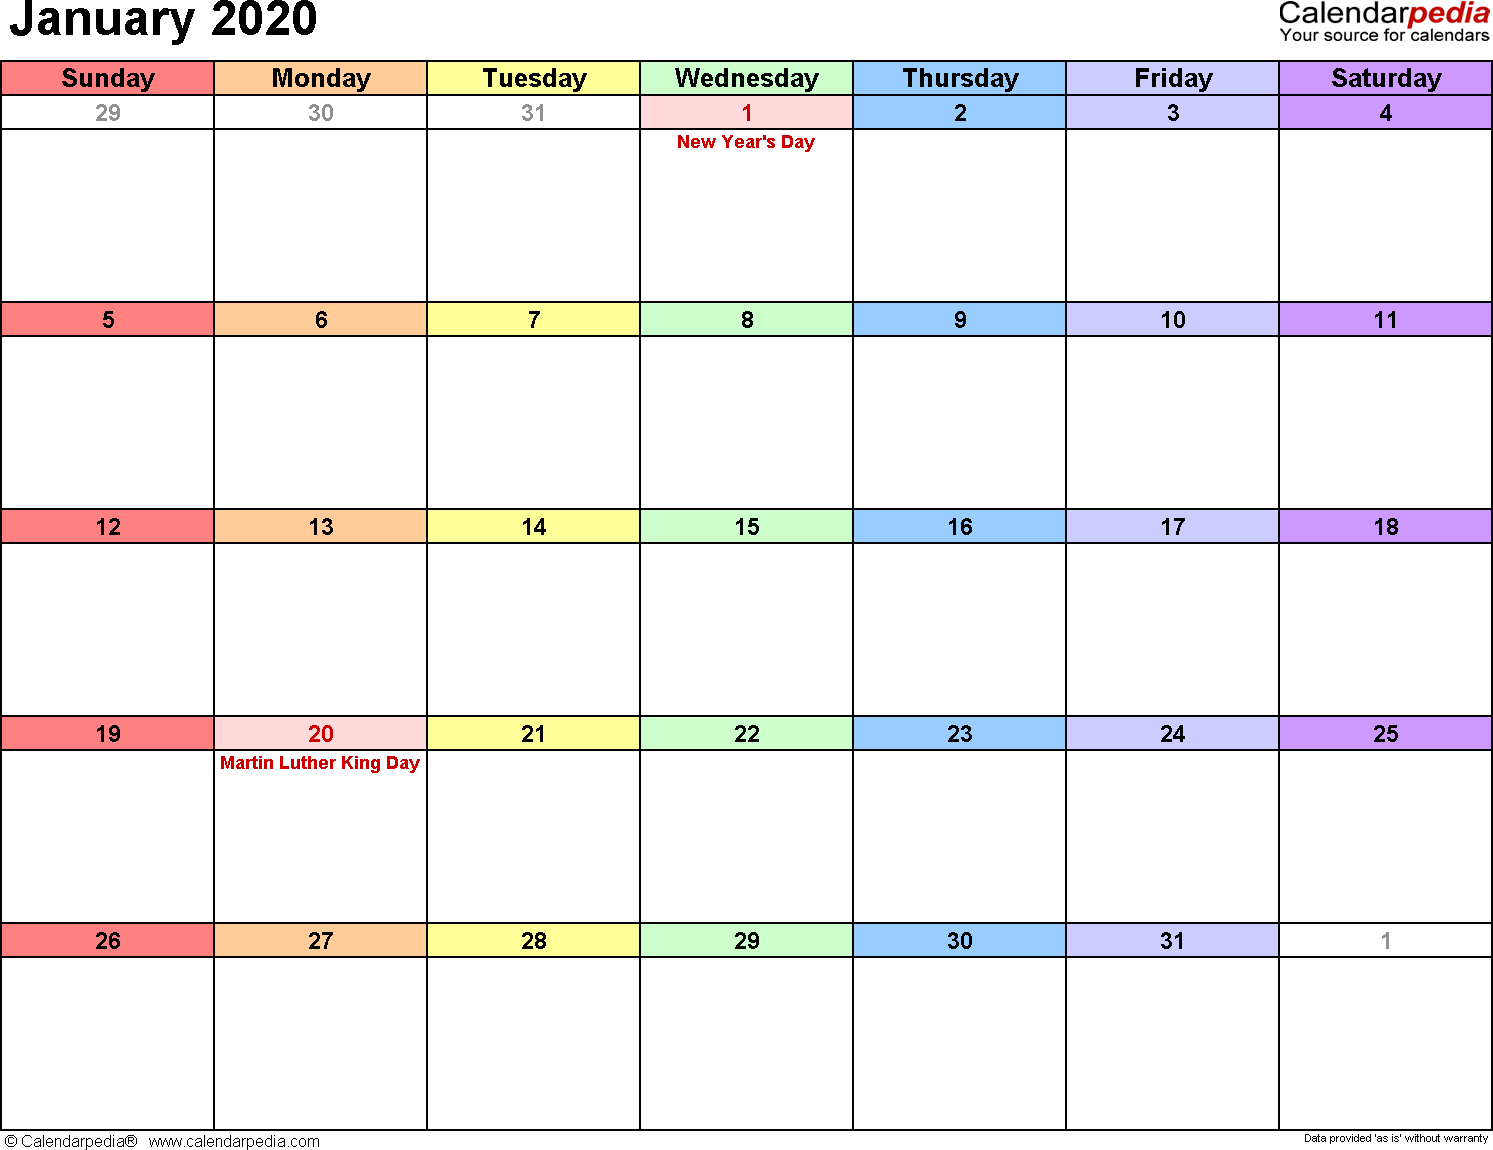 January Calendar Page 2020 January 2020 Calendars for Word, Excel & PDF